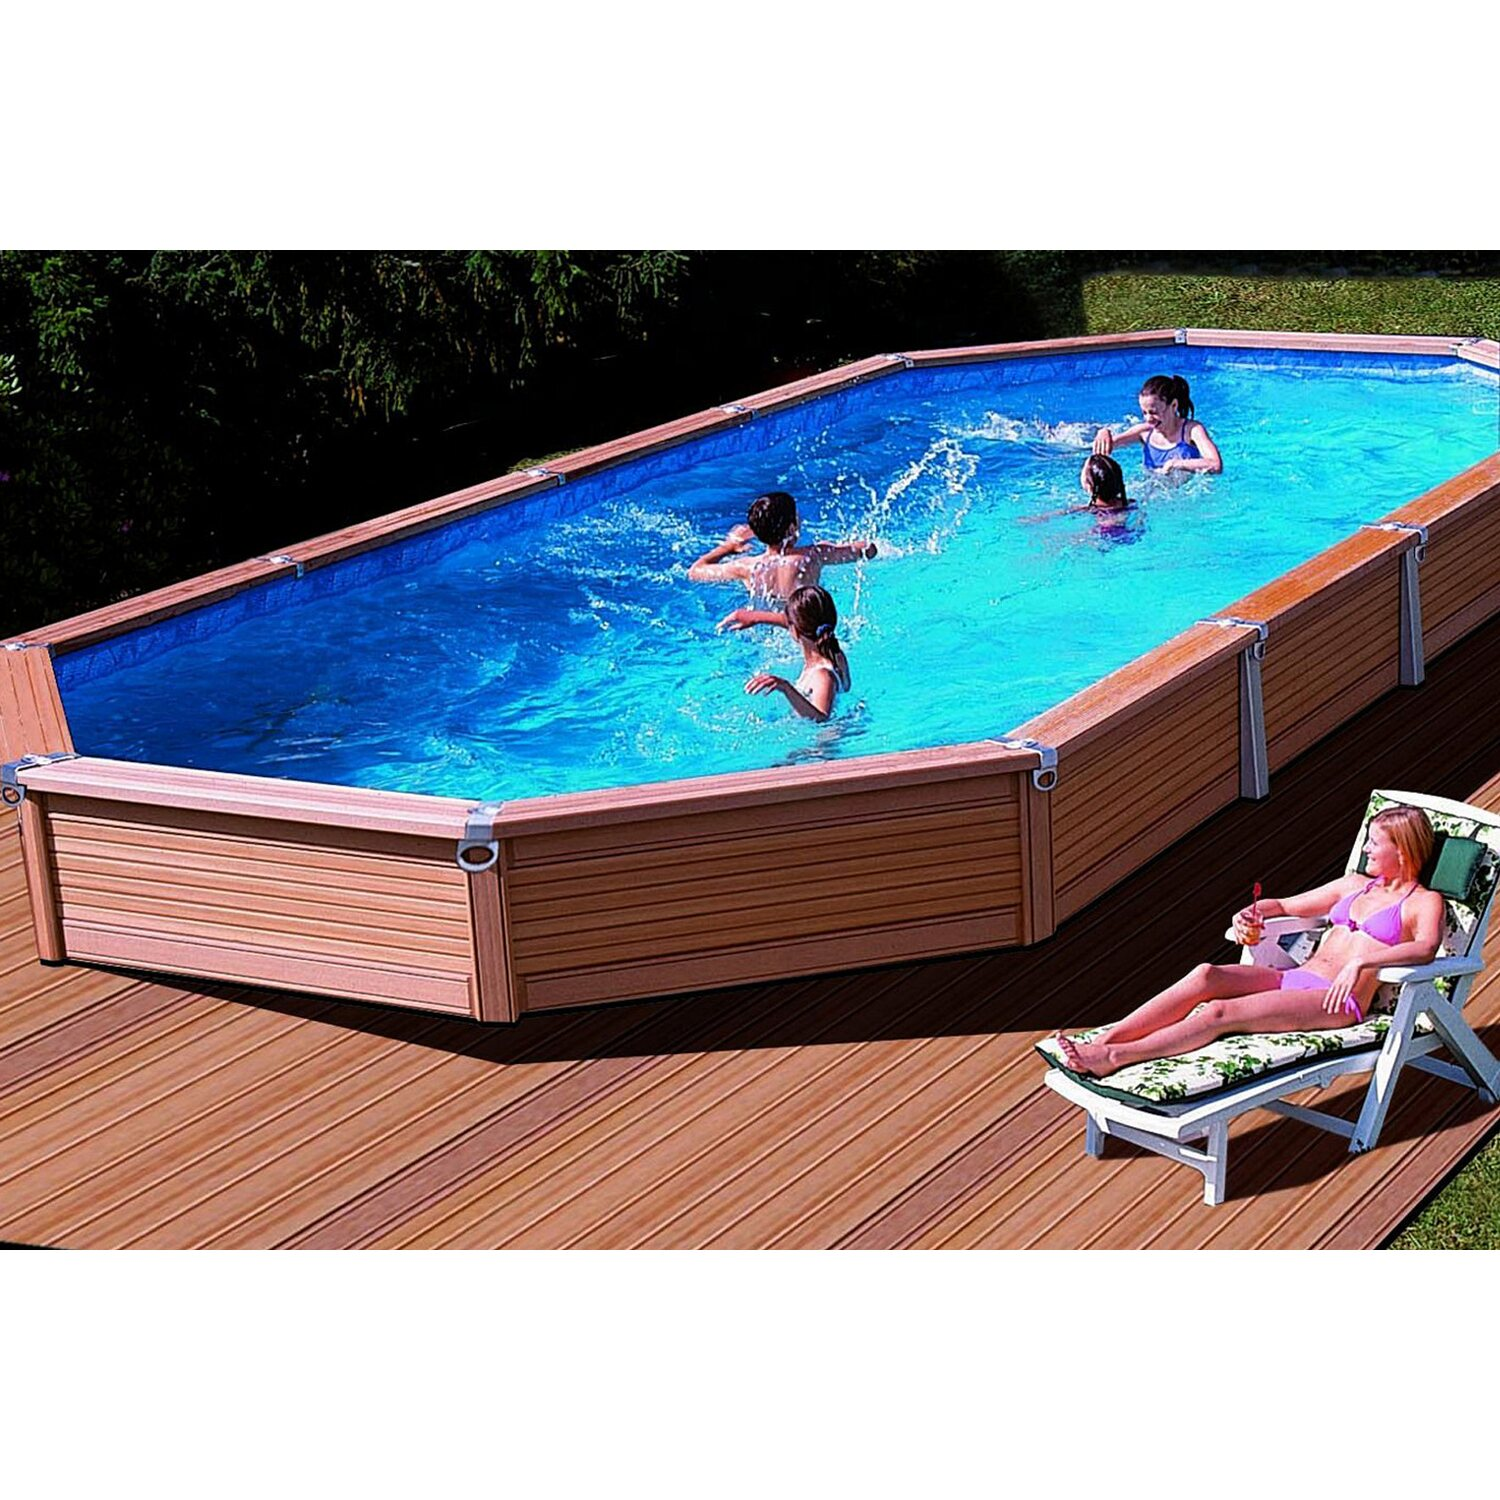 summer fun pool set azteck rechteckbecken zum einbau 690. Black Bedroom Furniture Sets. Home Design Ideas